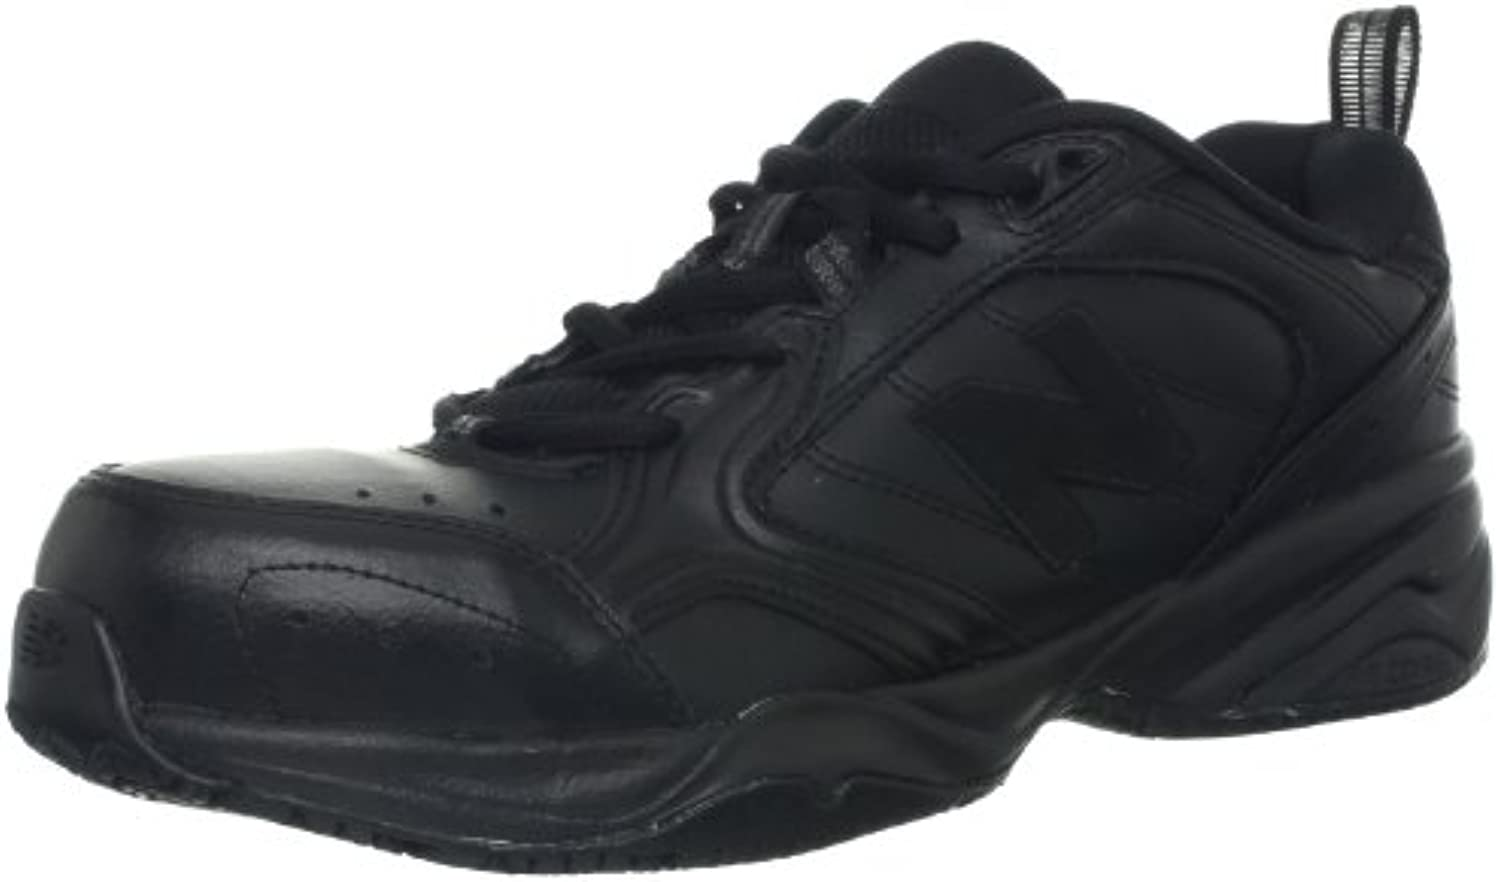 New Balance Men's MID627 Steel-Toe Work Shoe,Black,10 2E US